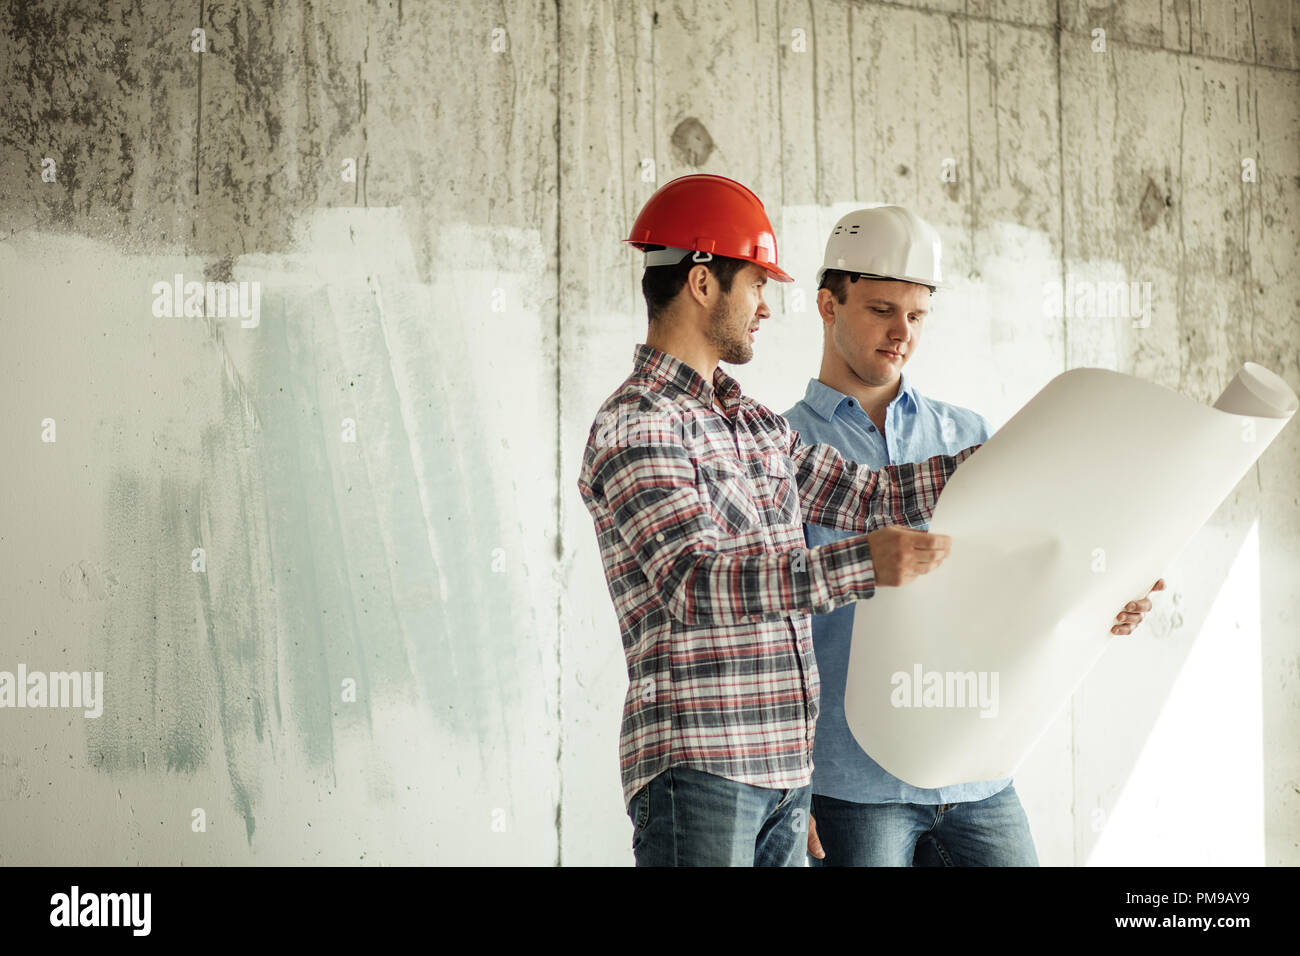 two creative builders are discussing the lotation of a new building. - Stock Image